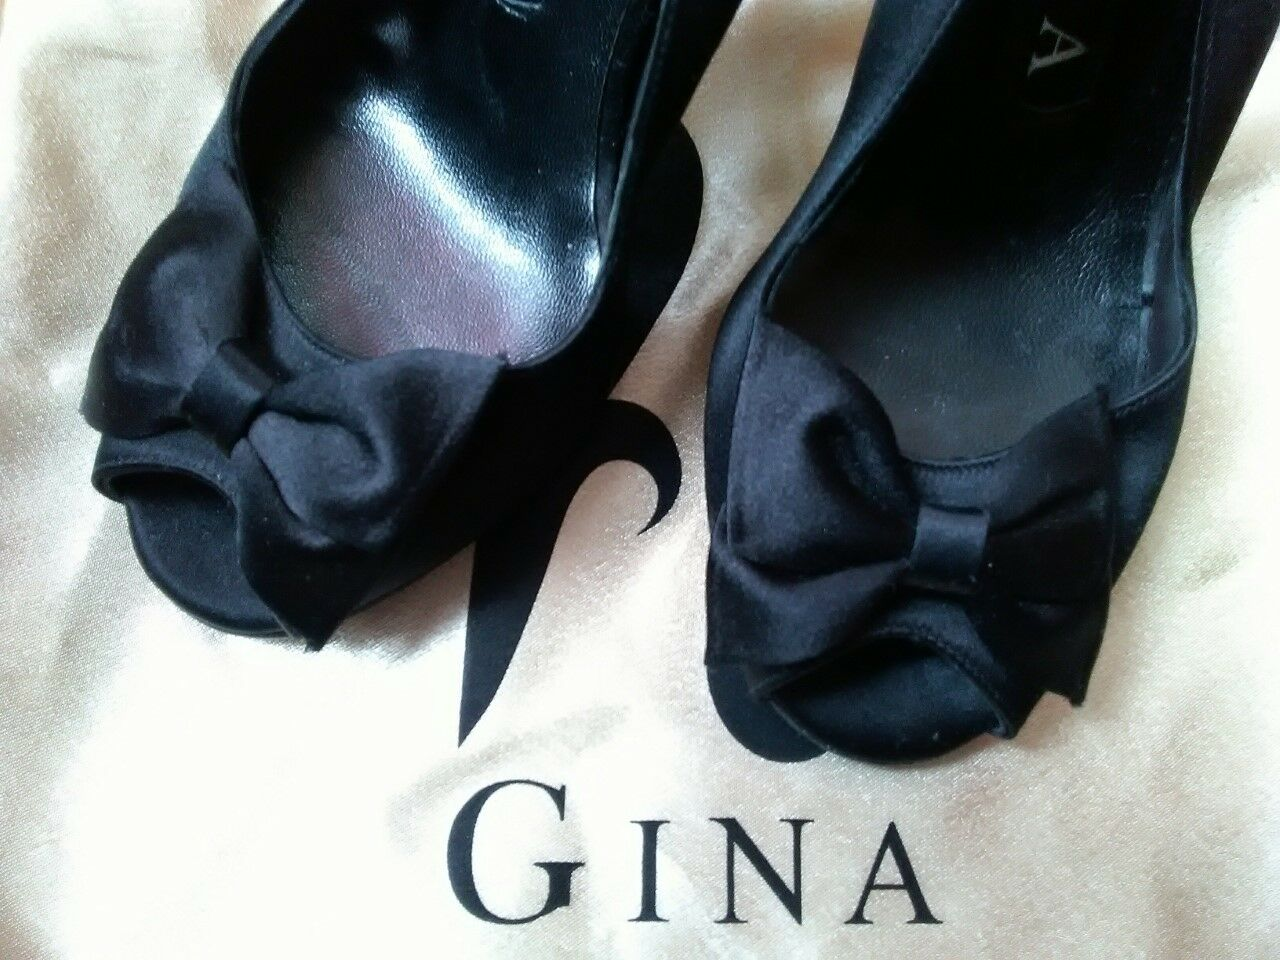 Gina Black Satin shoes -  Size 36.5 3.5